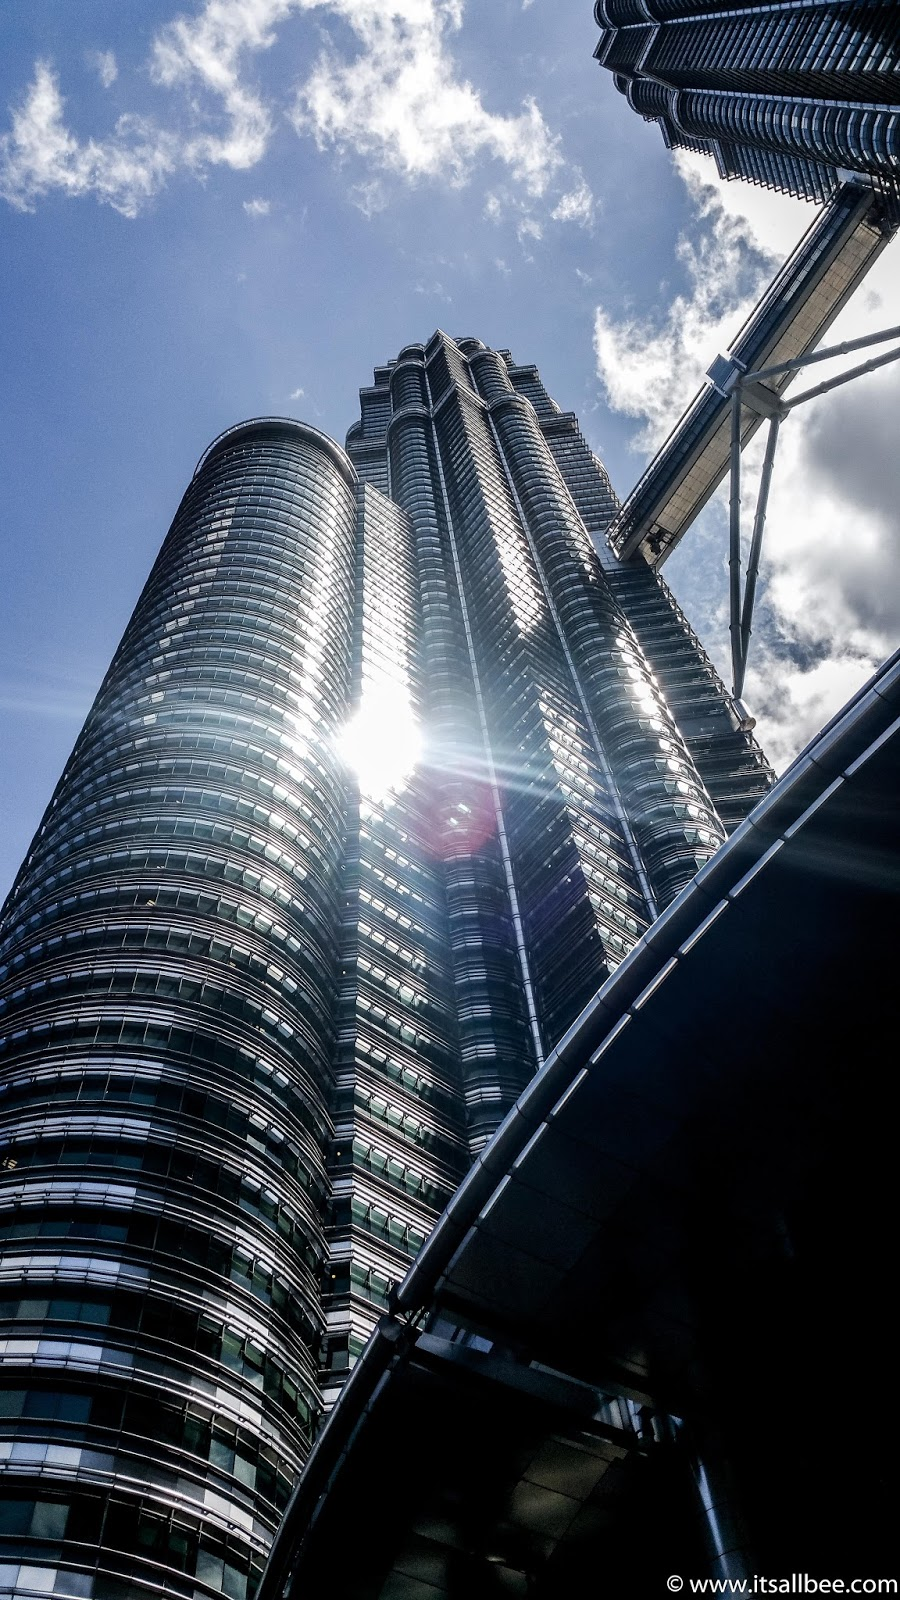 Petronas Towers | Sky High Views From Kuala Lumpur's Iconic Twin Towers